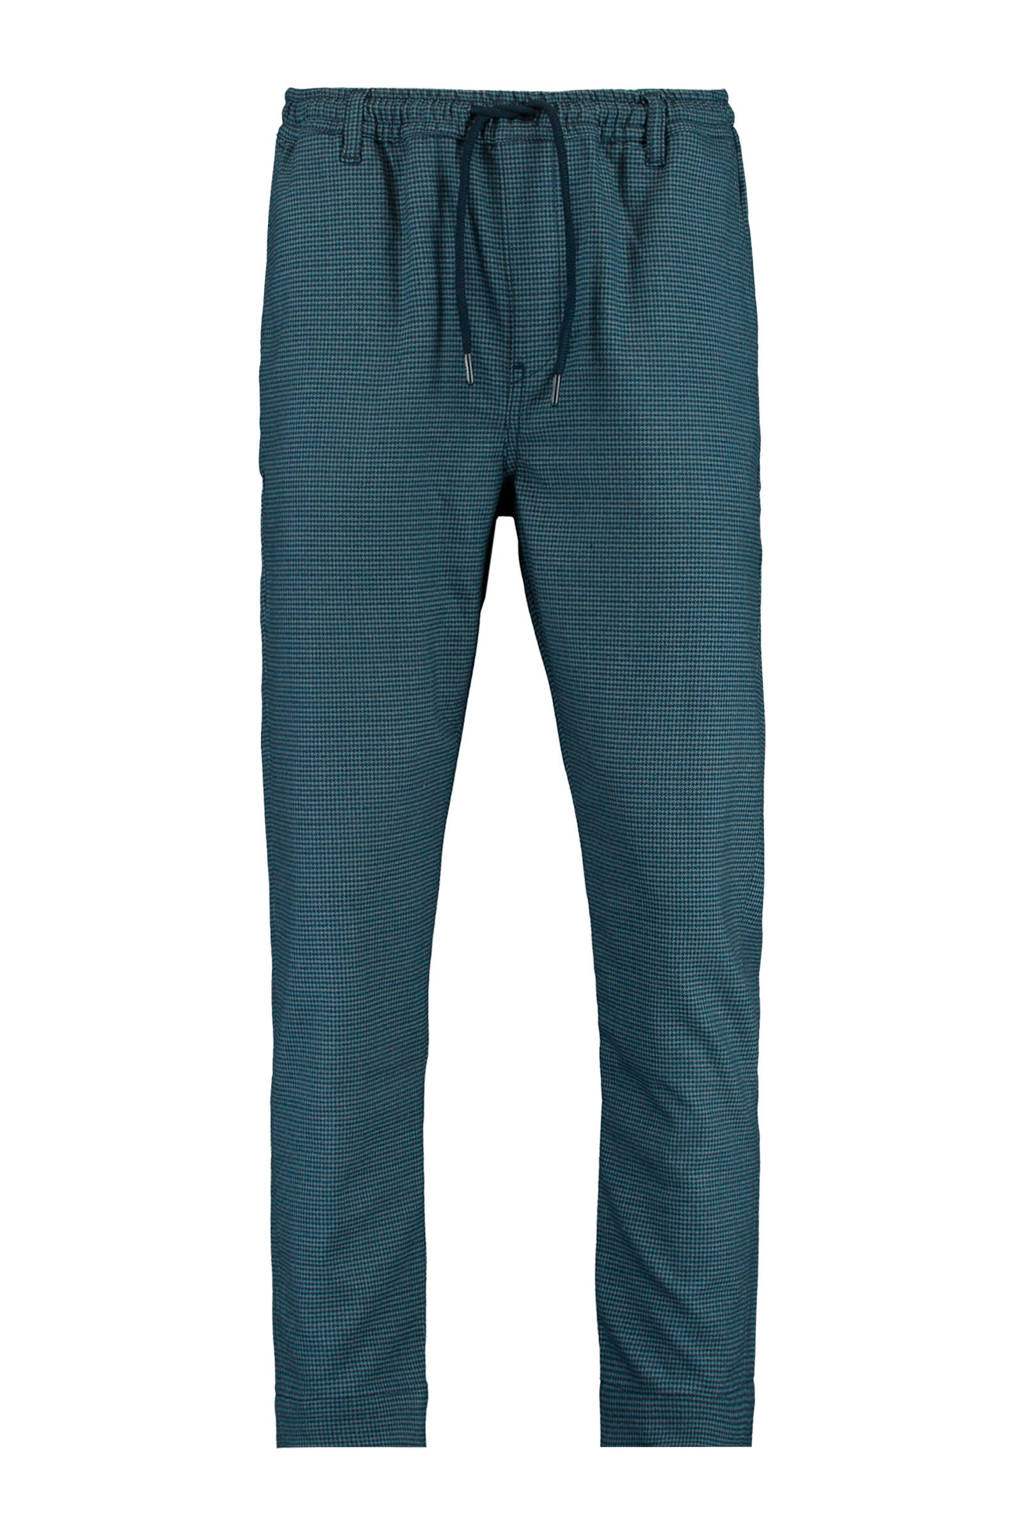 America Today America Today regular fit chino cool blue, Cool Blue